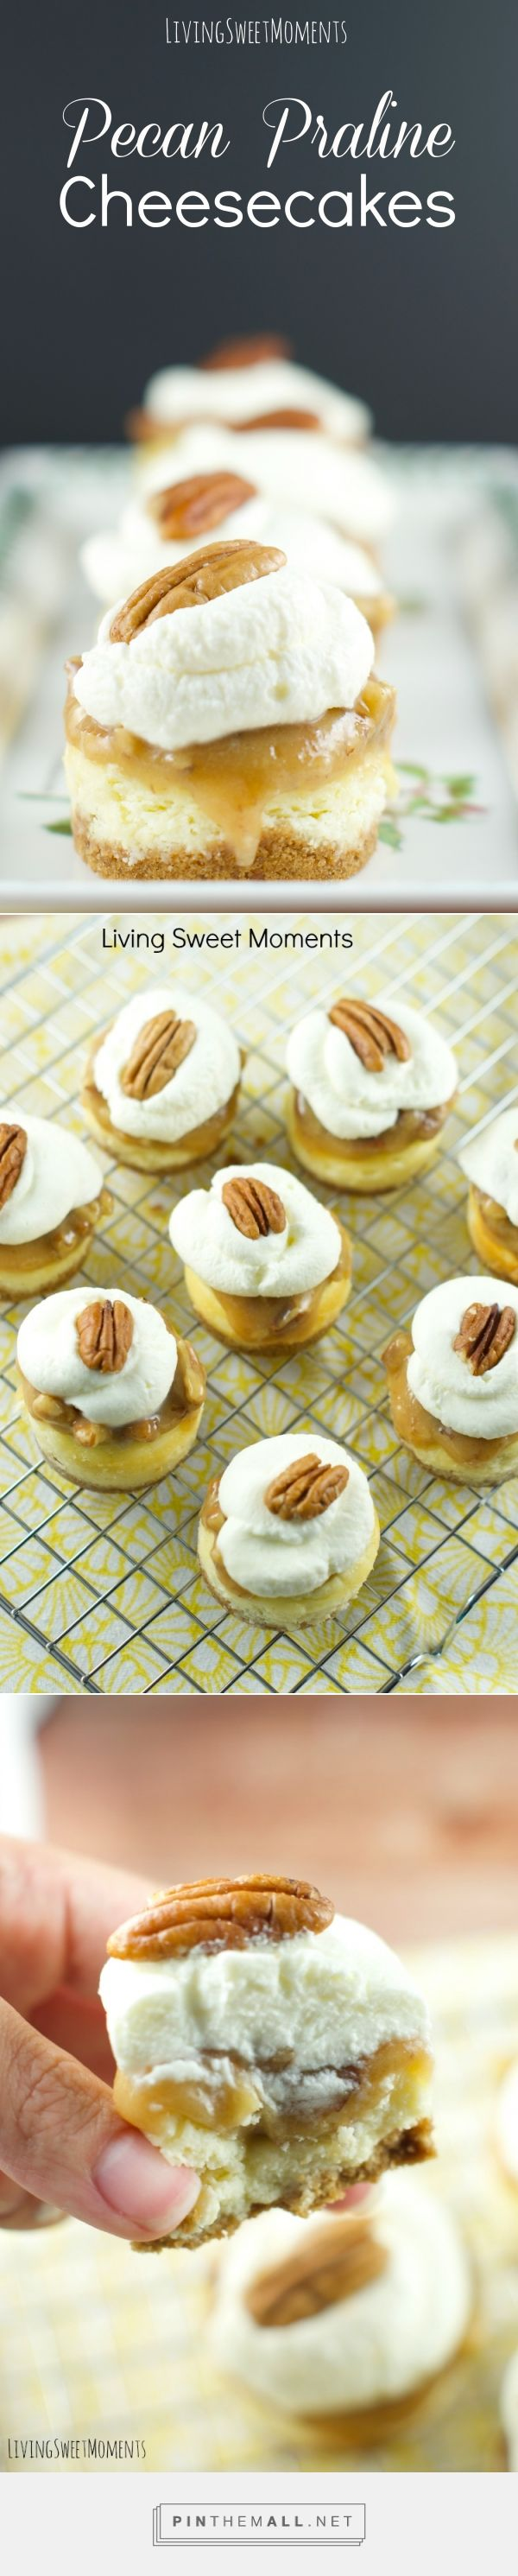 Pecan Praline Mini Cheesecakes - this is the best cheesecake recipe ever! these vanilla cheesecake bites are topped with pecan praline and chantilly cream